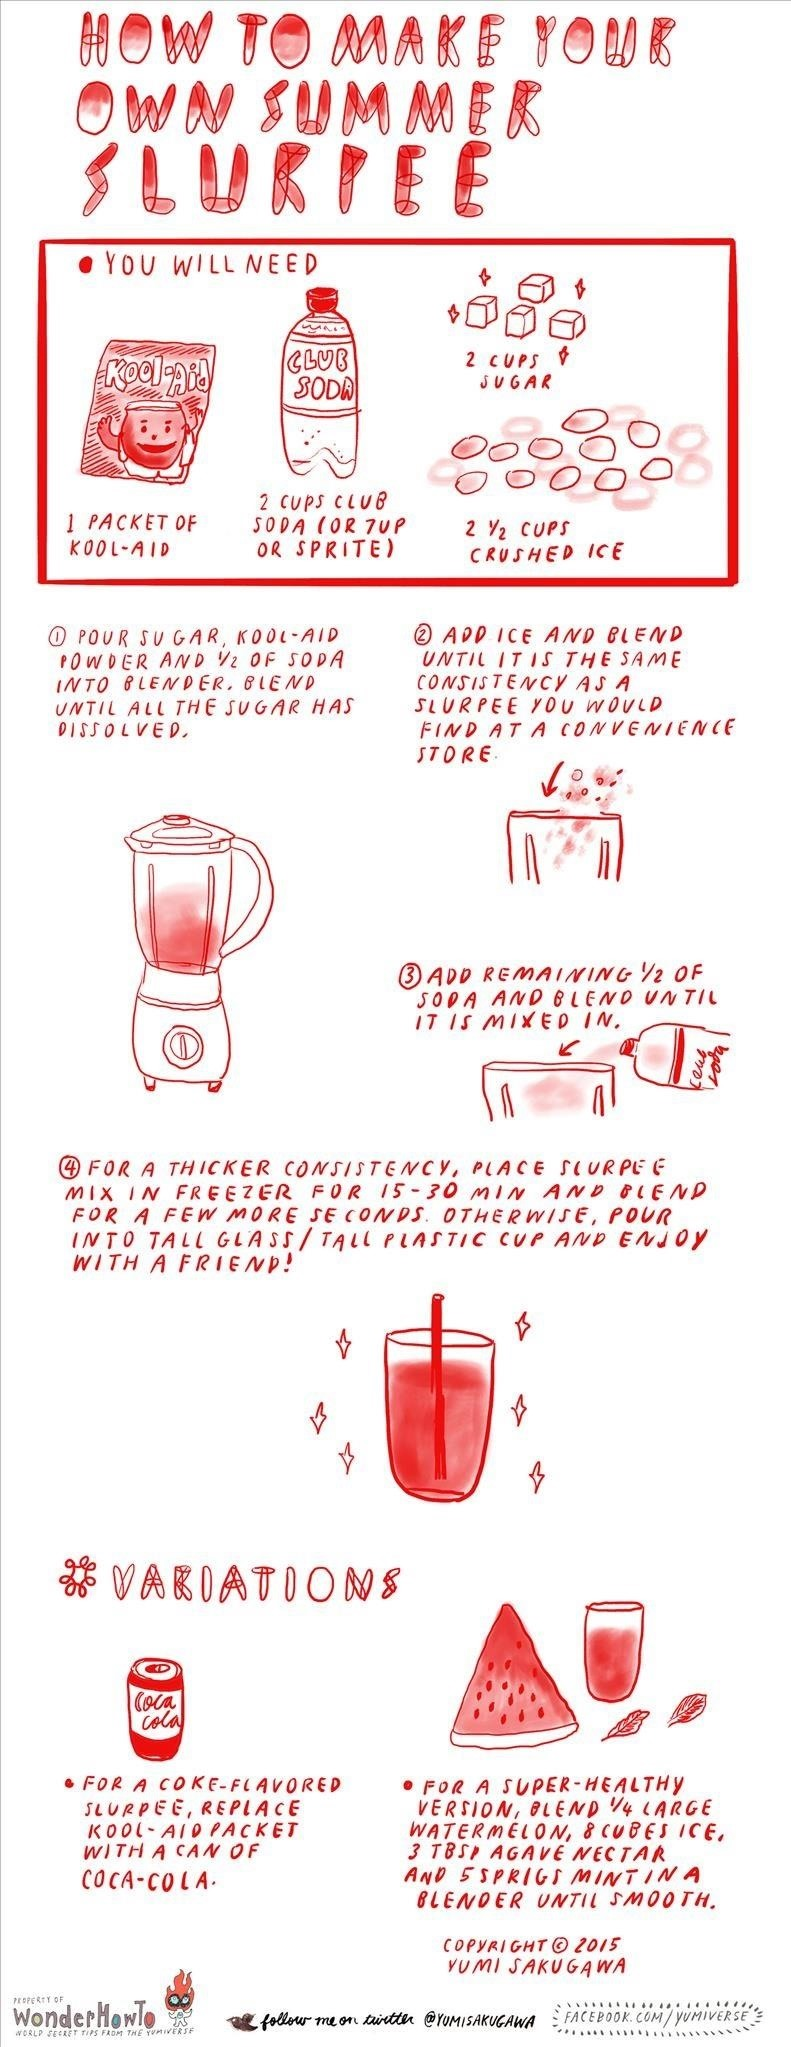 How to Make Your Own Summer Slurpee at Home